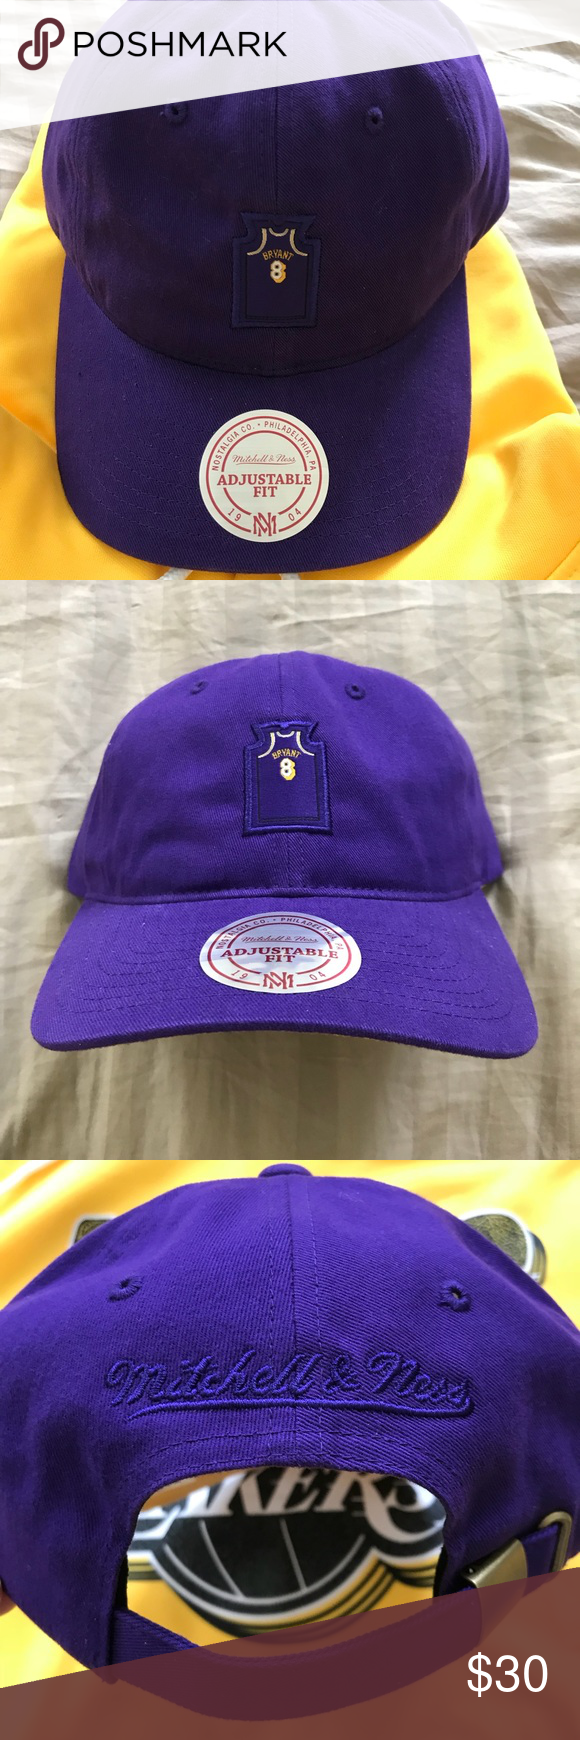 8da24038752eb Mitchell   Ness Lakers Kobe Bryant  8 Strap Back NBA Hardwood Classics  Mitchell   Ness